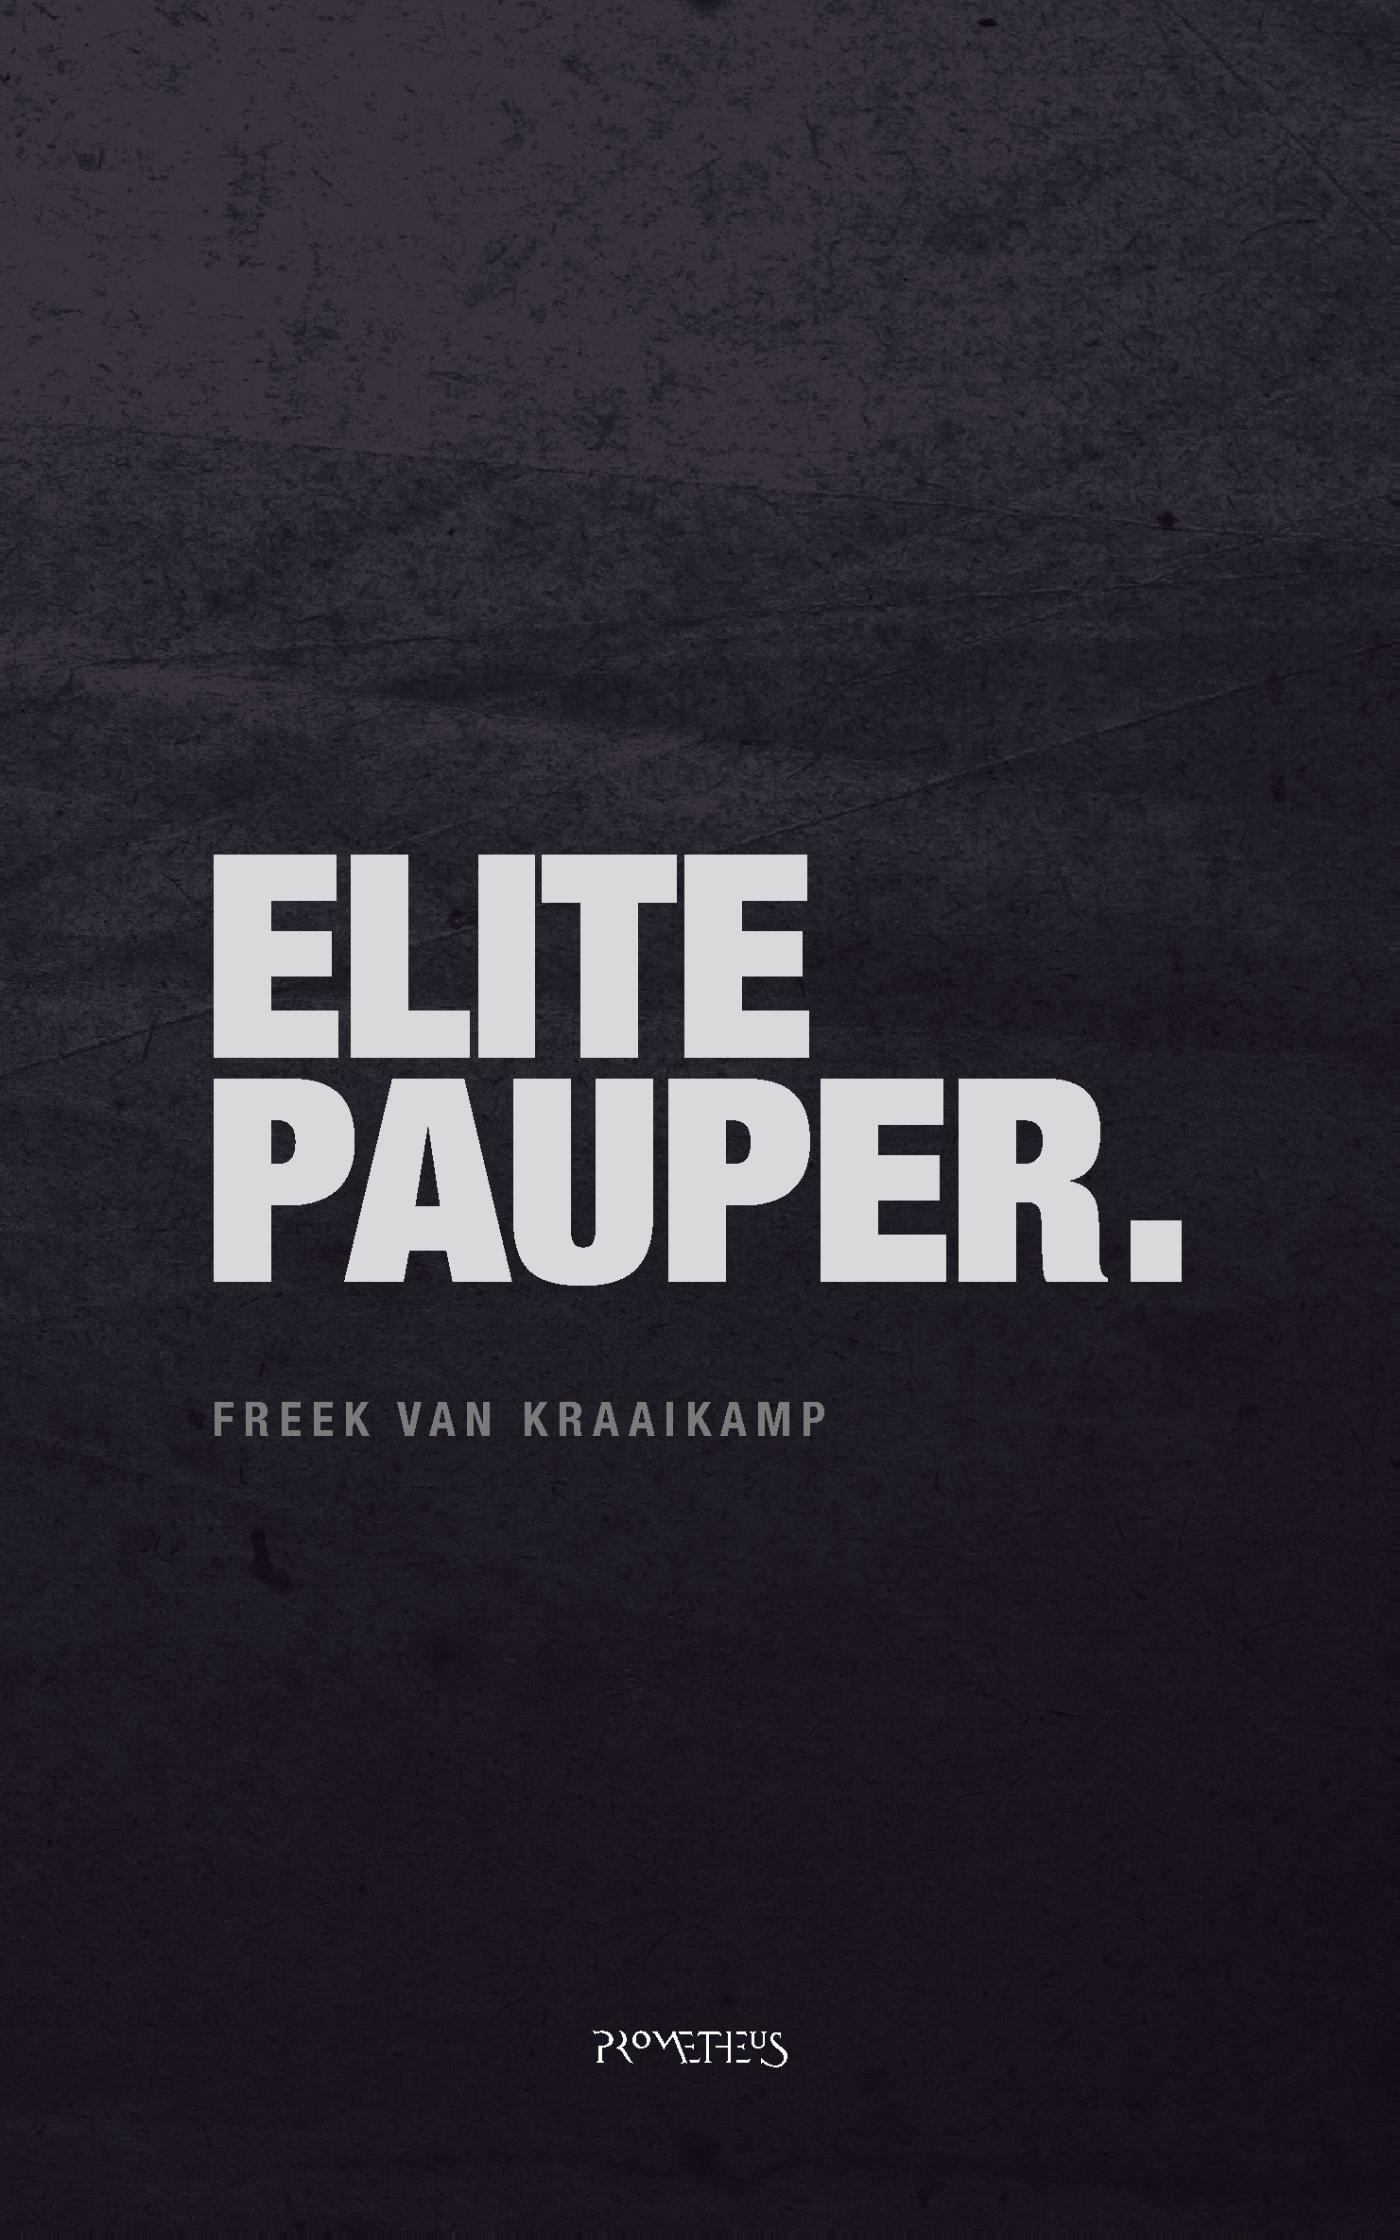 Elitepauper